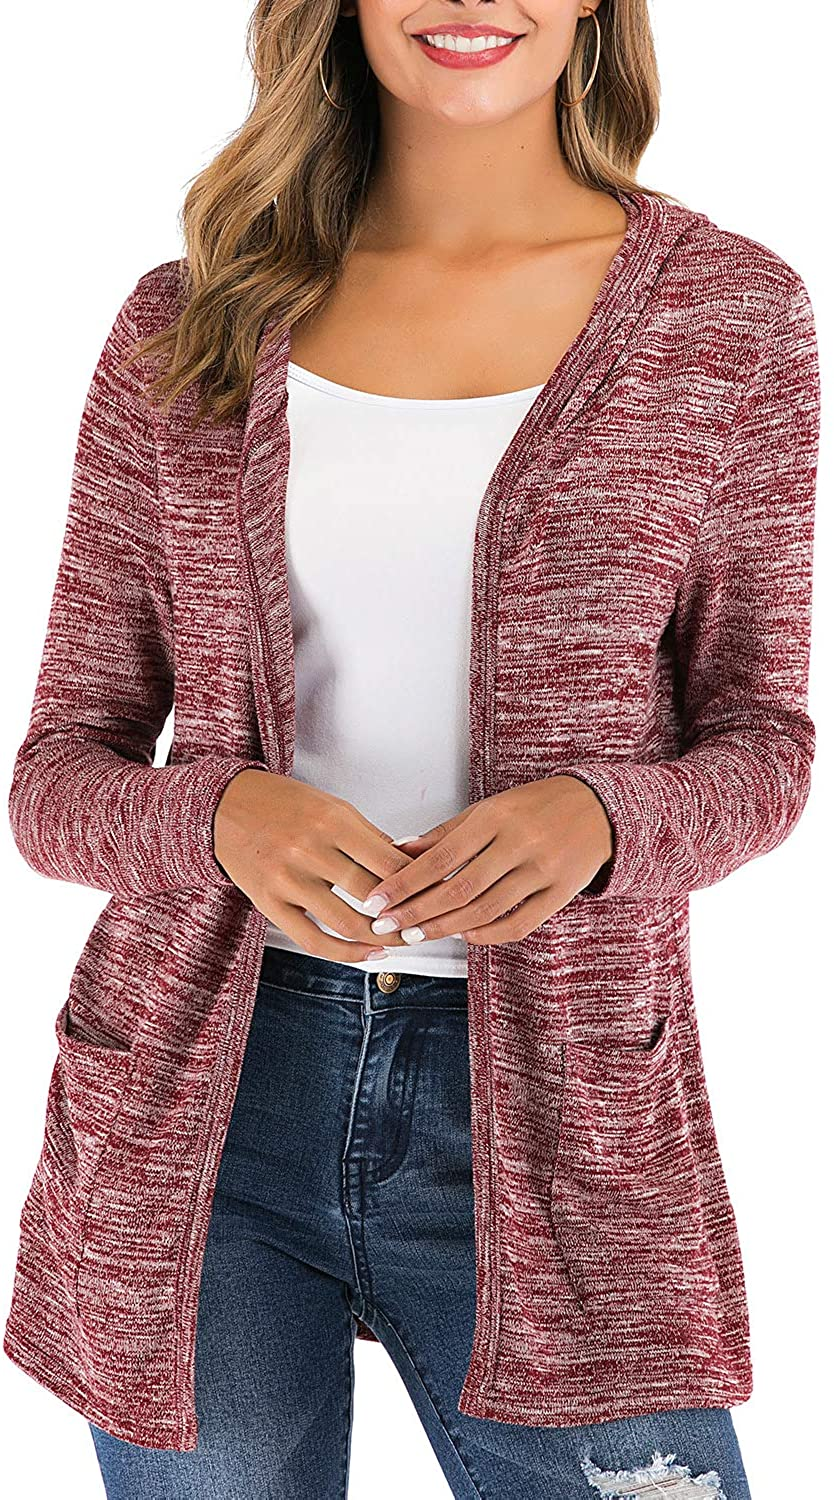 VZULY Women's Long Sleeve Tops Knit Open Front Casual Hooded Cardigans with 2 Pockets